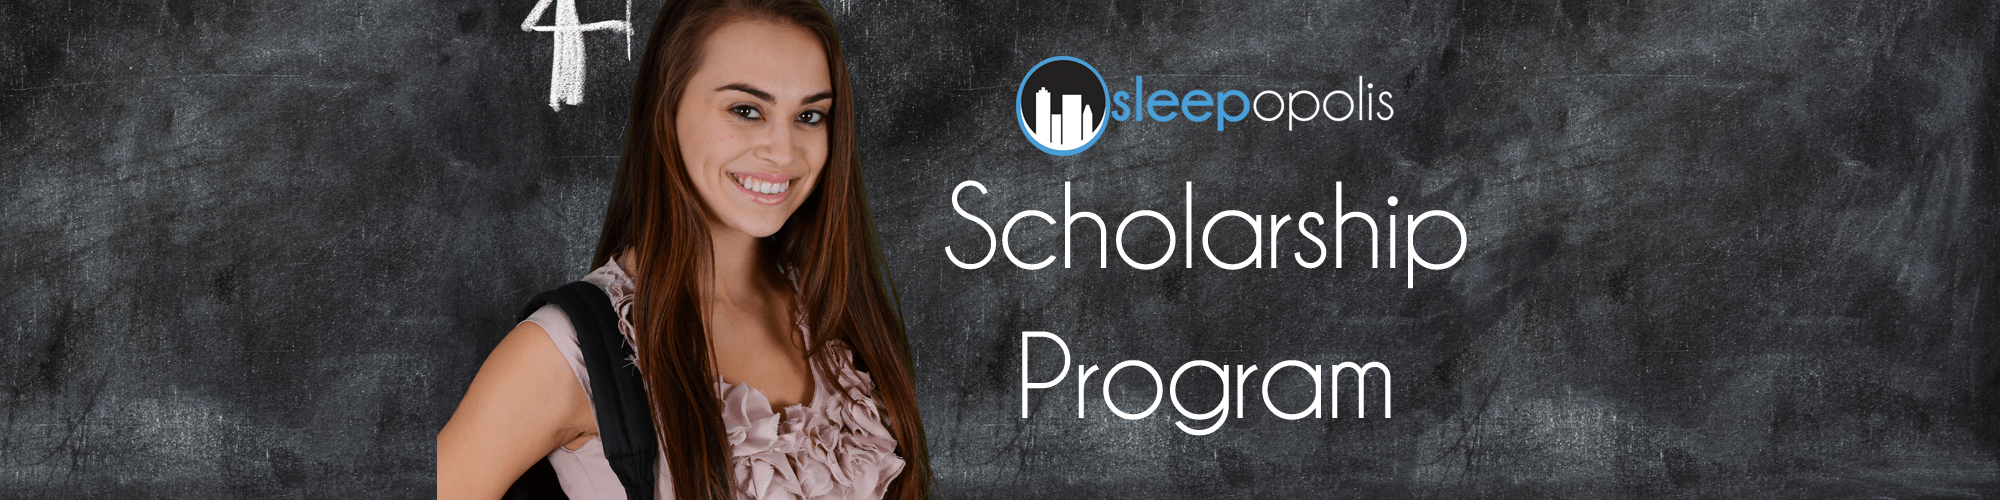 Sleepopolis Scholarship Program